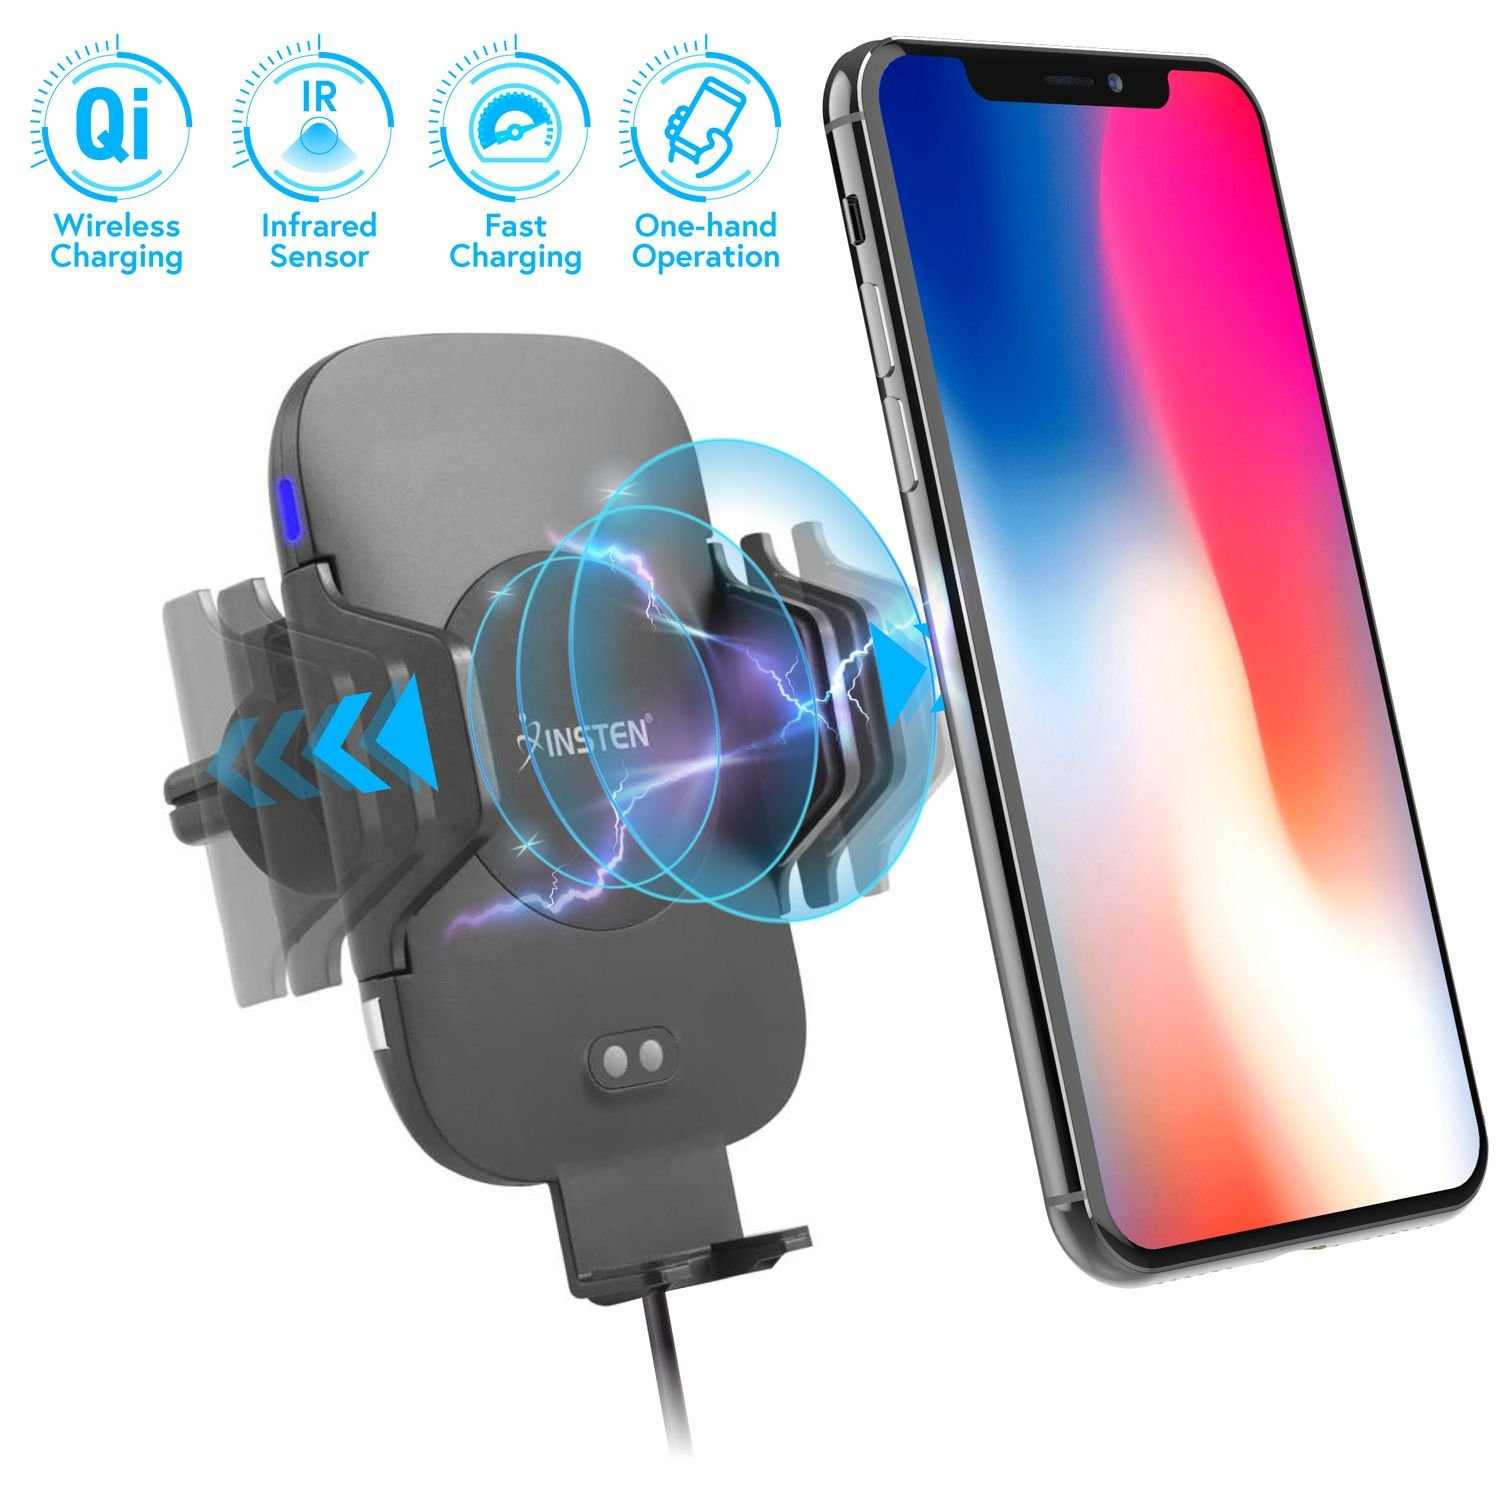 Quick Charge 3.0 Car Charger, Insten 18W Quick Charge 3.0 USB Car Charger Adapter for Samsung Galaxy S9/S9+/S8+/Note 8/Note 9, LG G5/G6/V20/V30, HTC U11 Plus, HTC 10 and Qi Enabled Smartphones eForCity